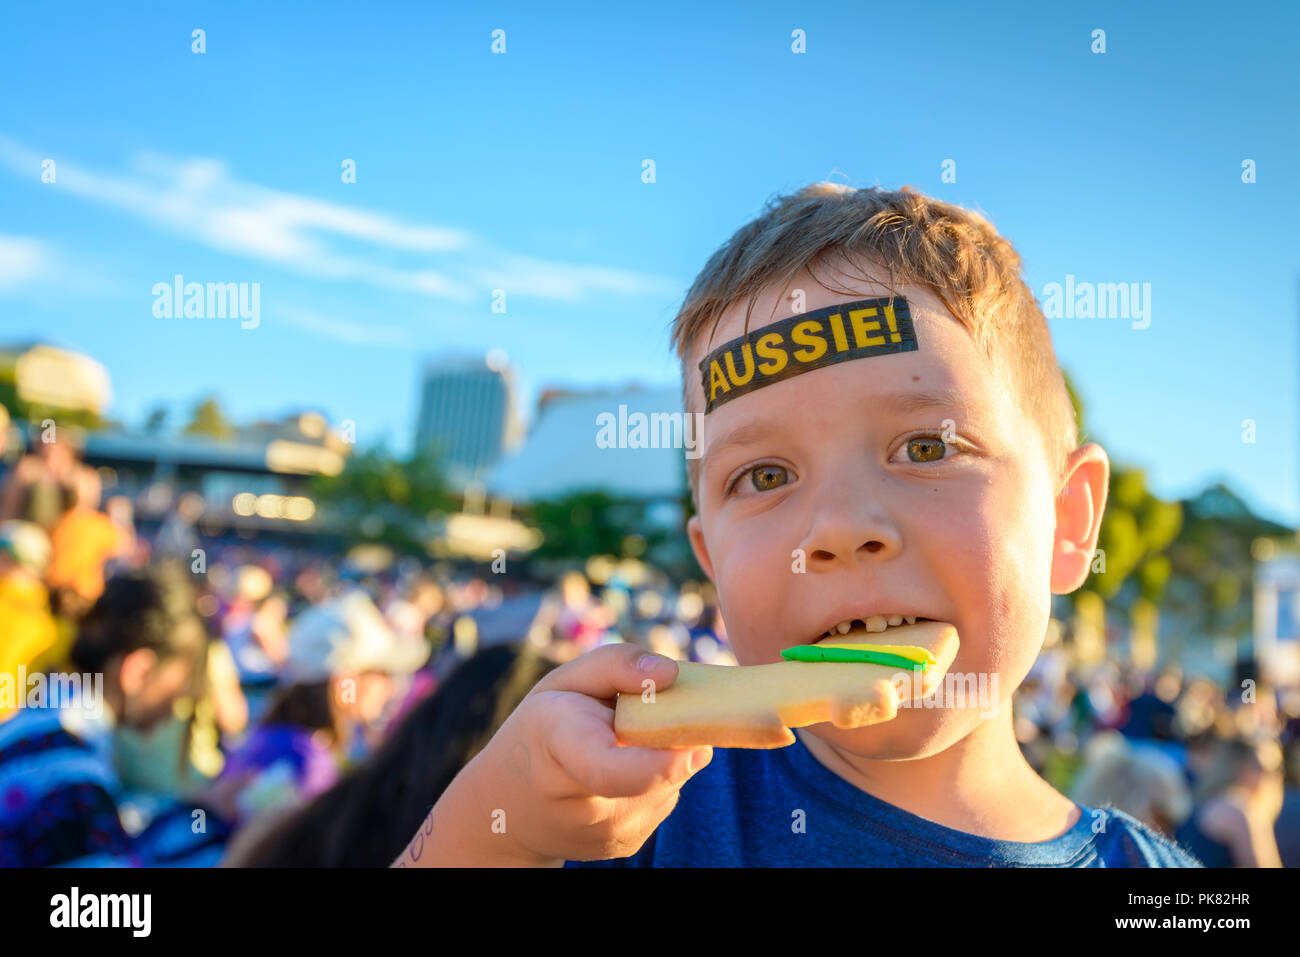 Cute Australian boy with Aussie tattoo on his face on Australia Day celebration in Adelaide - Stock Image